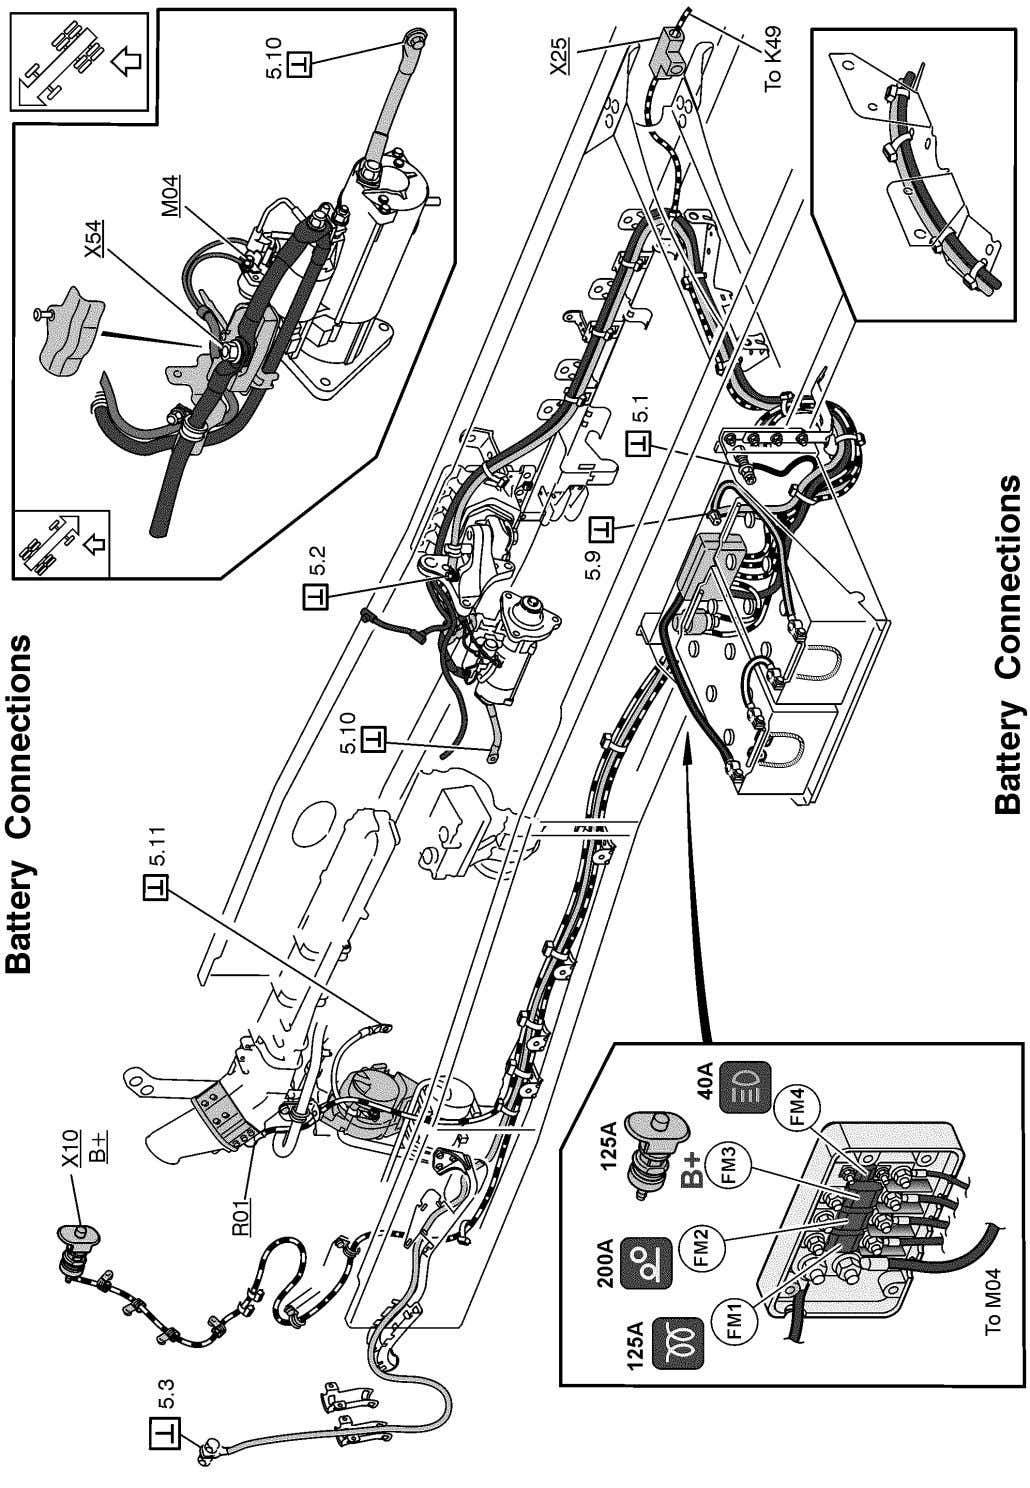 T3021554 Wiring diagram Page 127 (298)